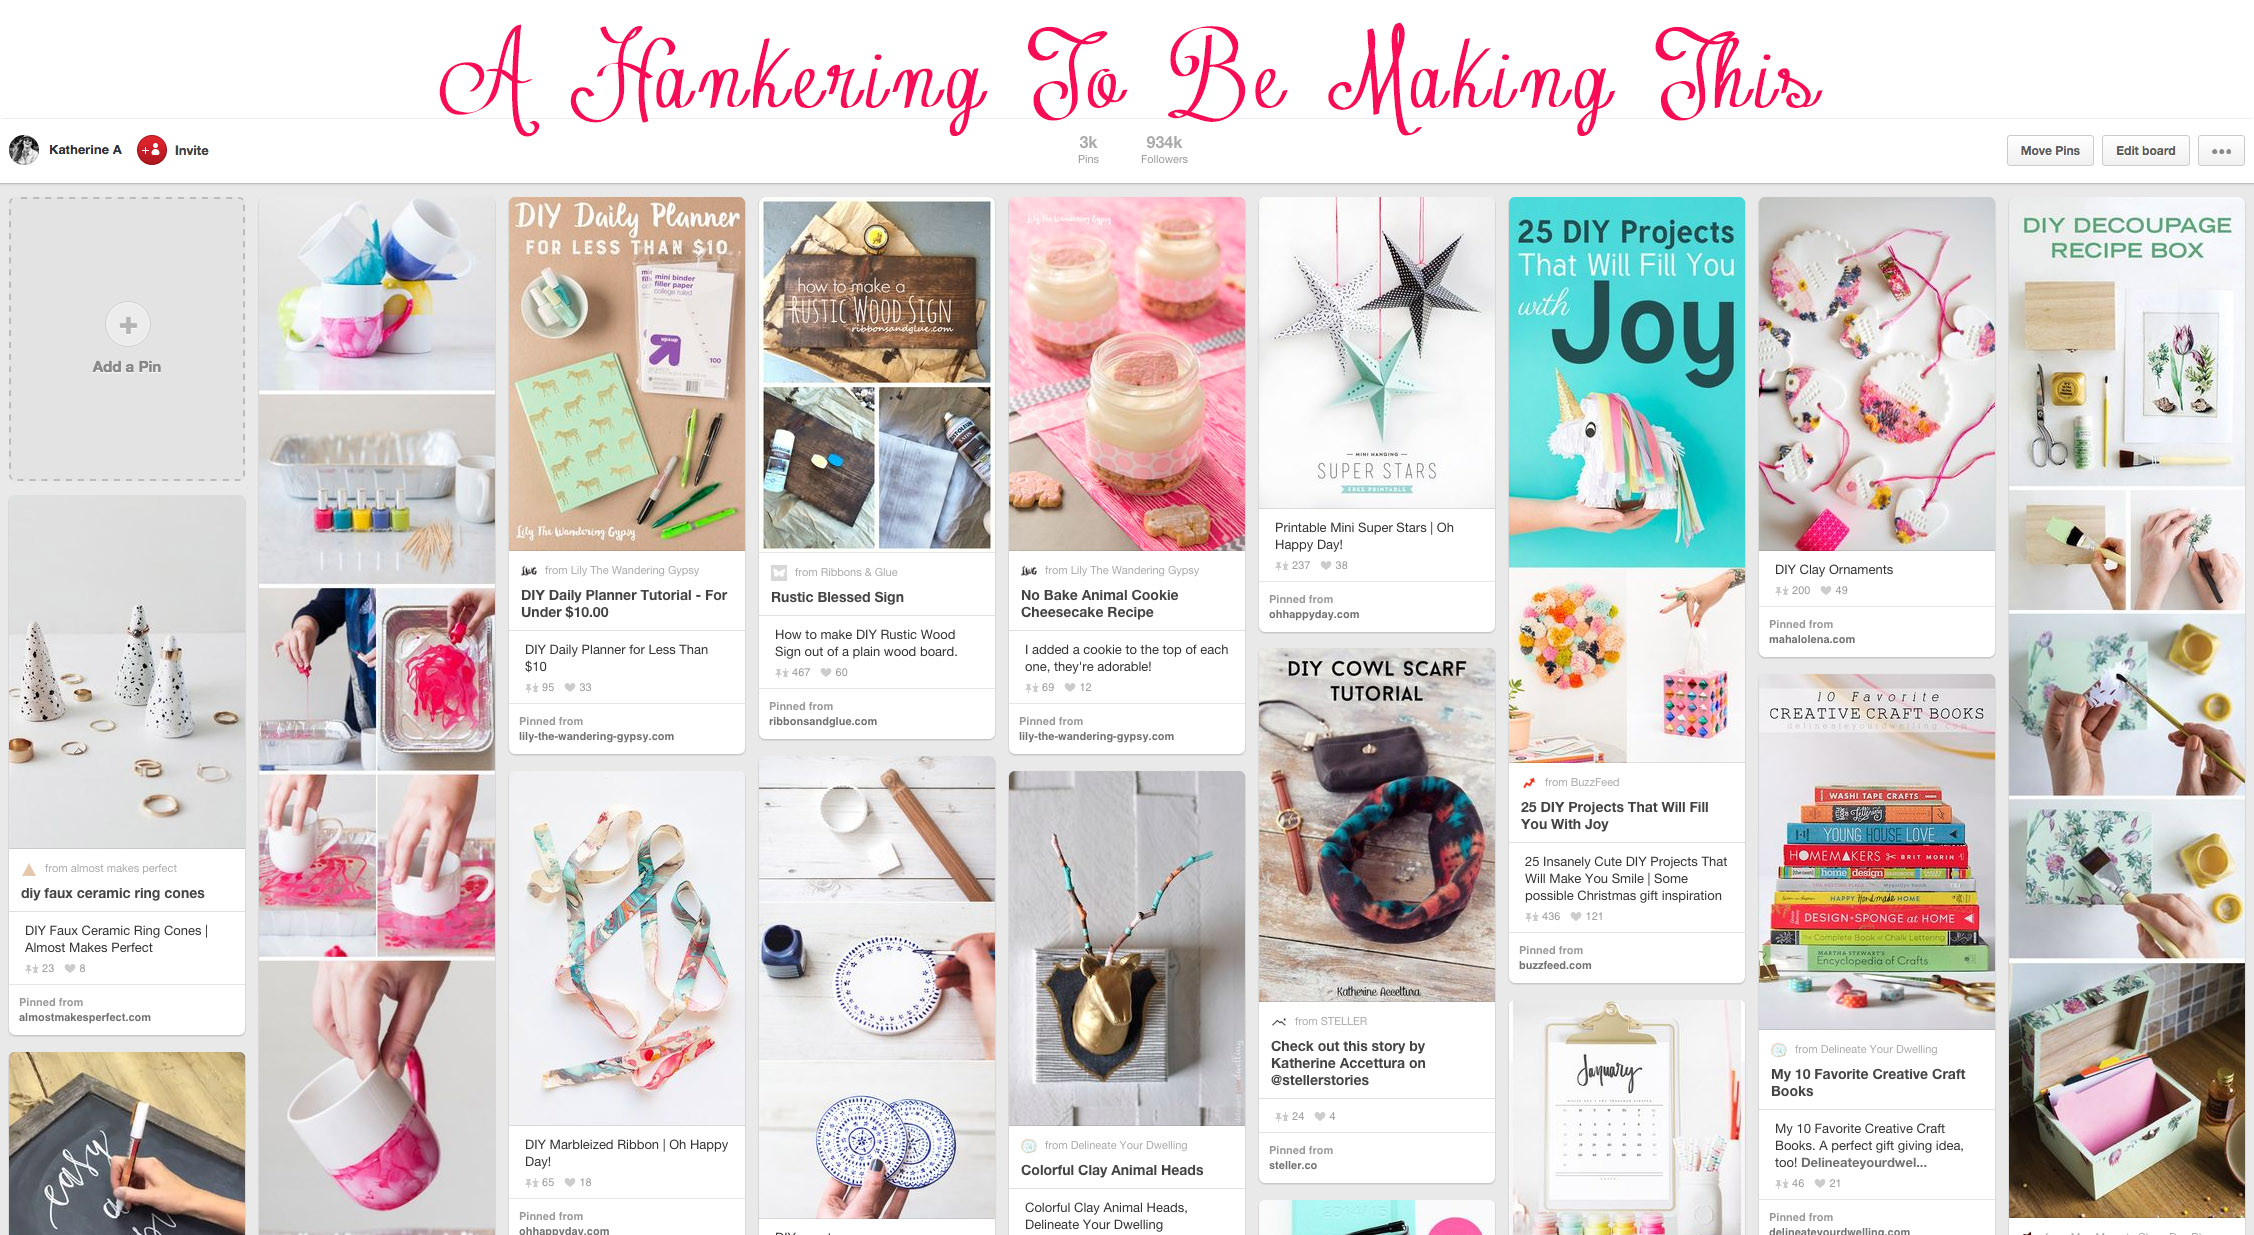 Also, check out my pin board,  A Hankering To Be Making This  for TONS of ideas!